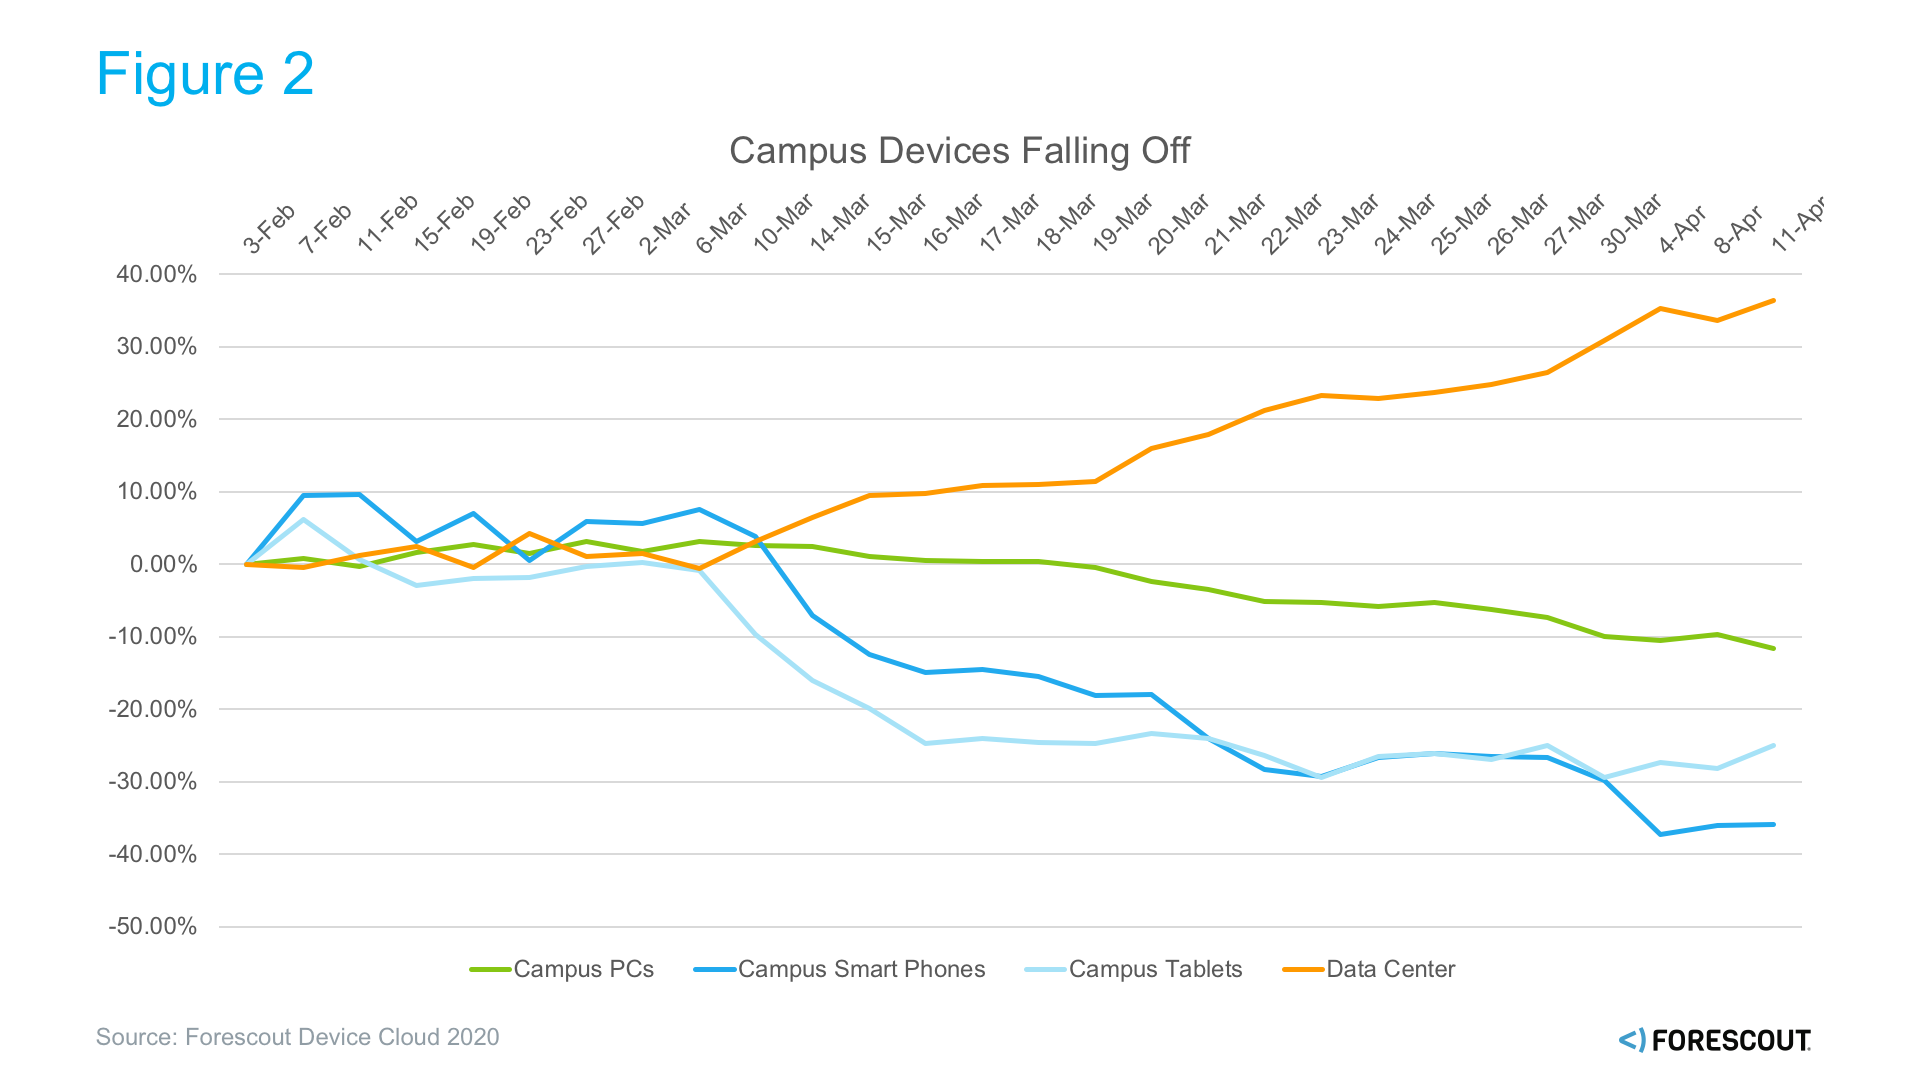 Campus Devices Falling Off